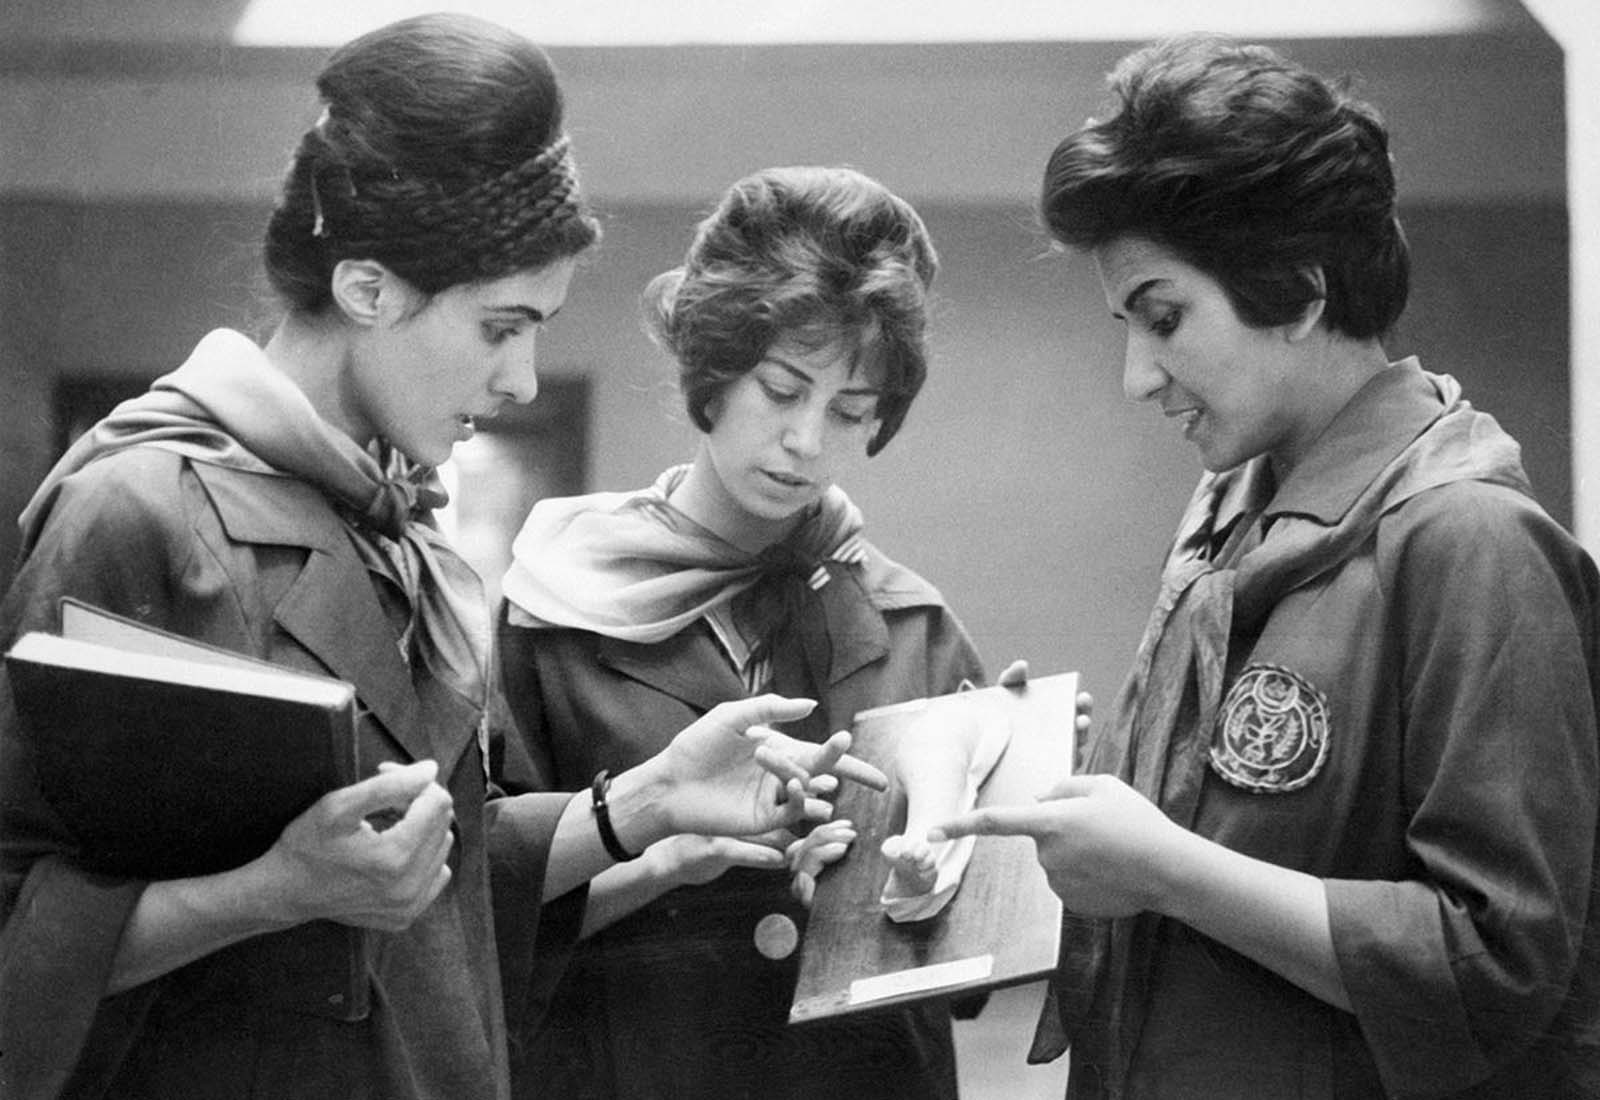 Picture taken in 1962 at the Faculty of Medicine in Kabul of two Afghan medicine students listening to their professor (at right) as they examine a plaster cast showing a part of a human body.